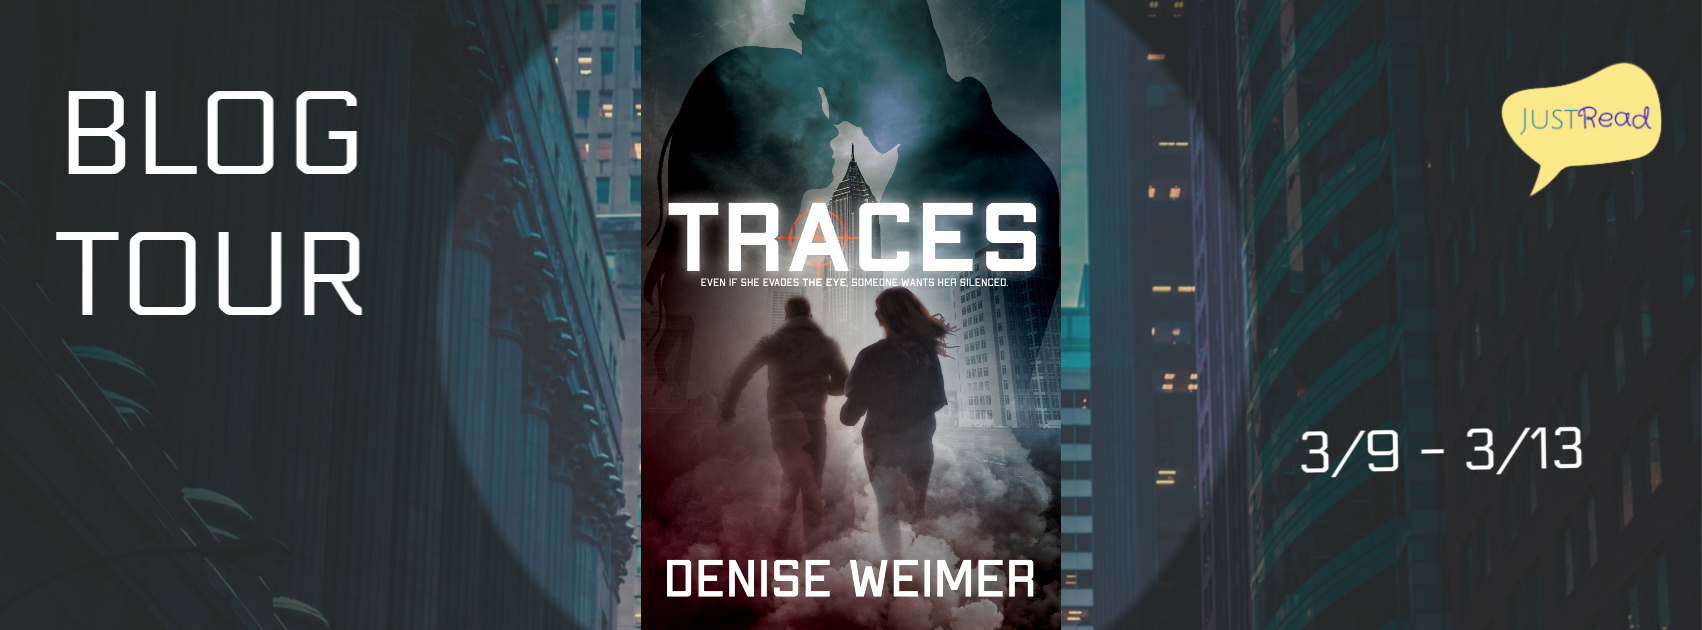 Welcome to the Traces Blog Tour & Giveaway!